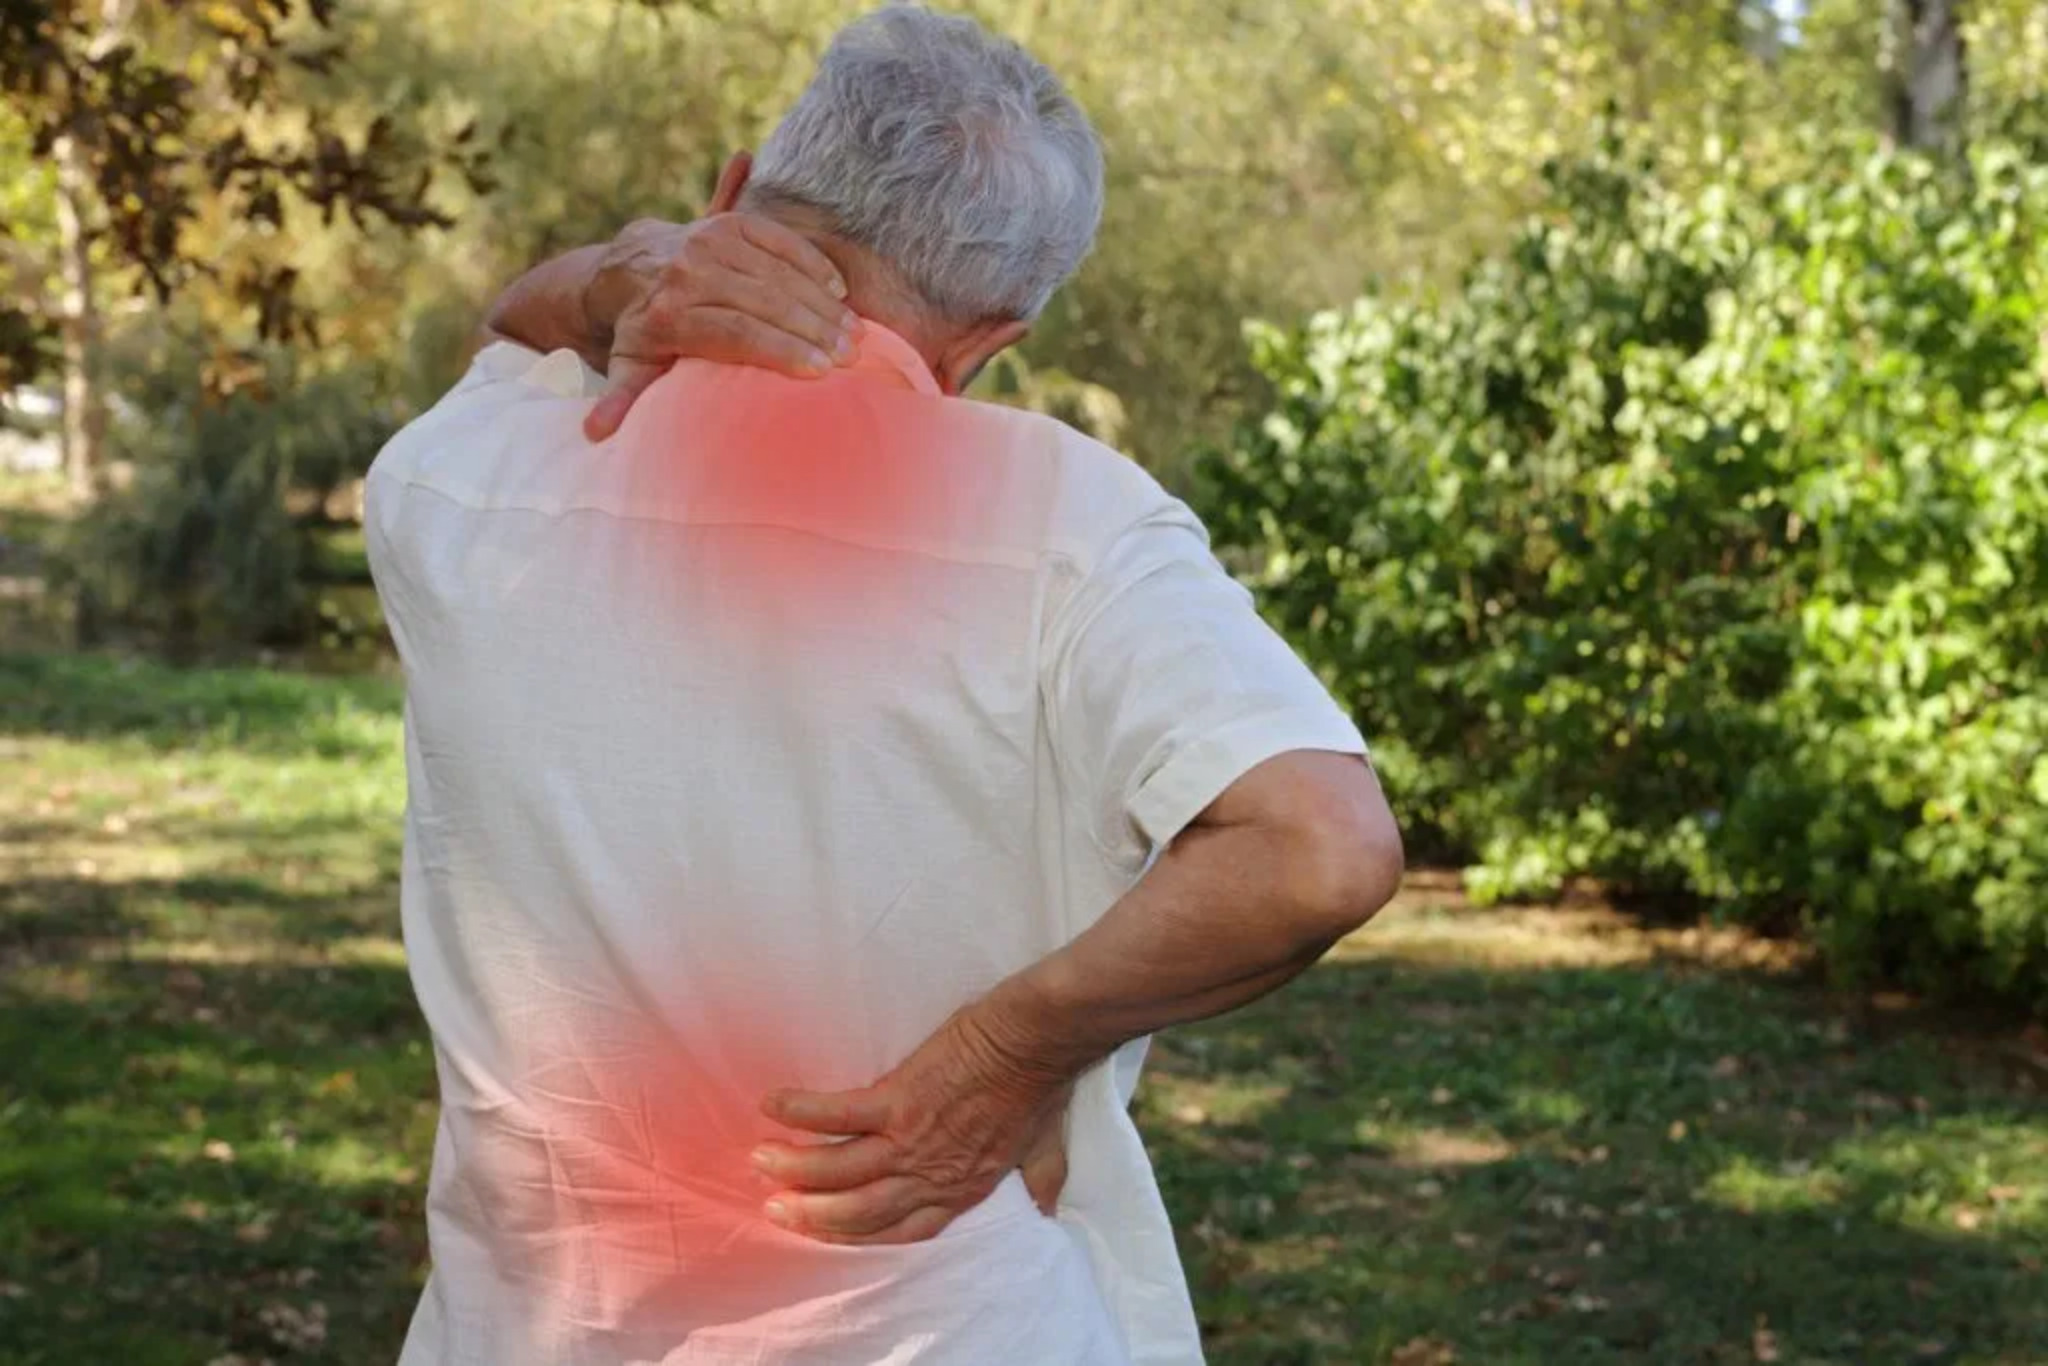 What can we do with low back pain?